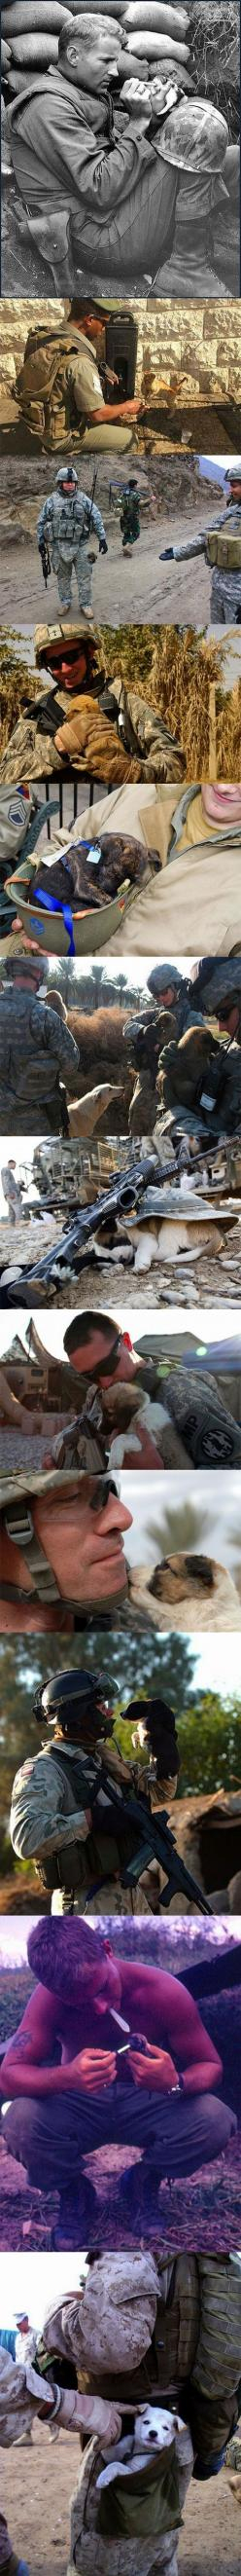 How cute!: Soldiers, Best Friends, Hero, Sweet, My Heart, Real Men, Dog, Man, Animal